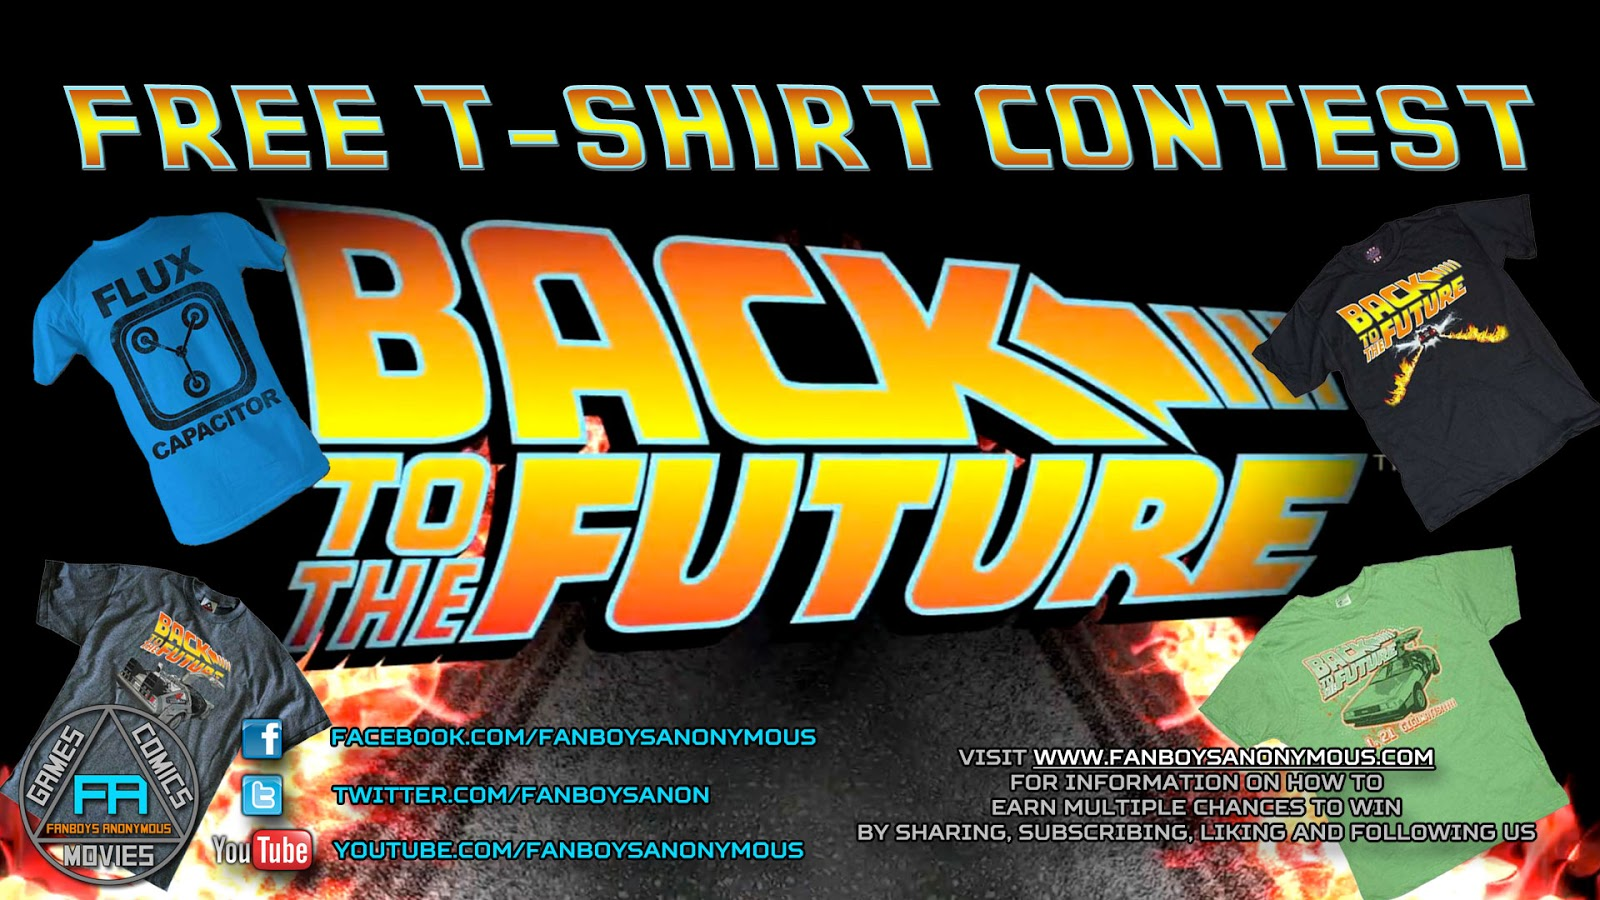 win a free Back to the Future shirt by subscribing to Fanboys Anonymous